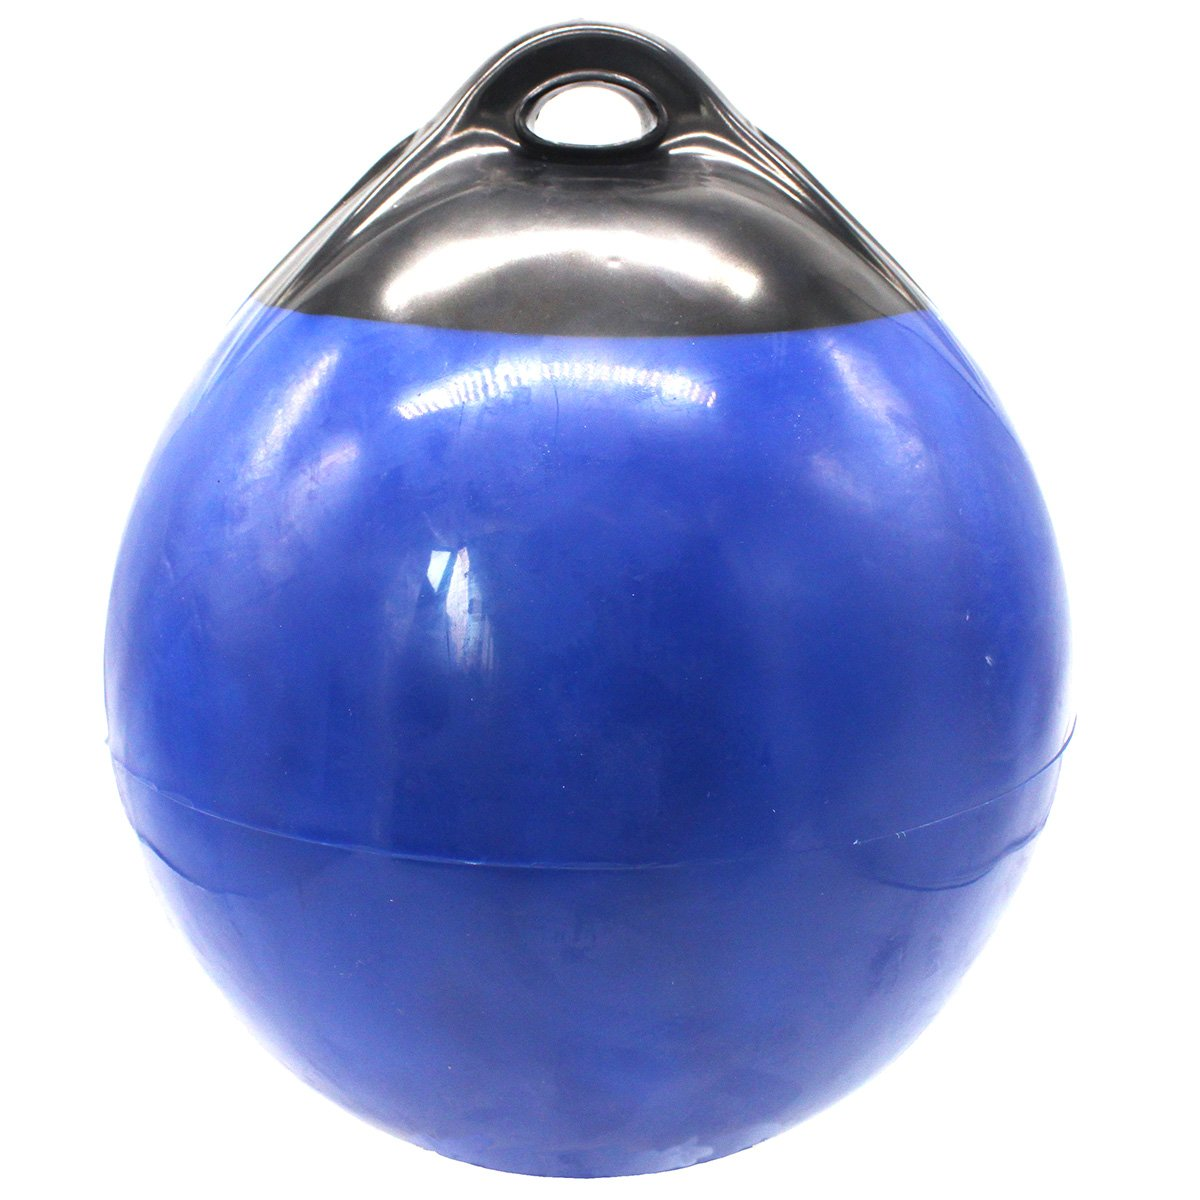 X-Haibei 1 Boat Fender Ball Round Anchor Buoy | Dock Bumper Ball Inflatable Vinyl A-Series Shield Protection Marine Mooring Buoy Blue, A25(D9.8 H12.2INCH)